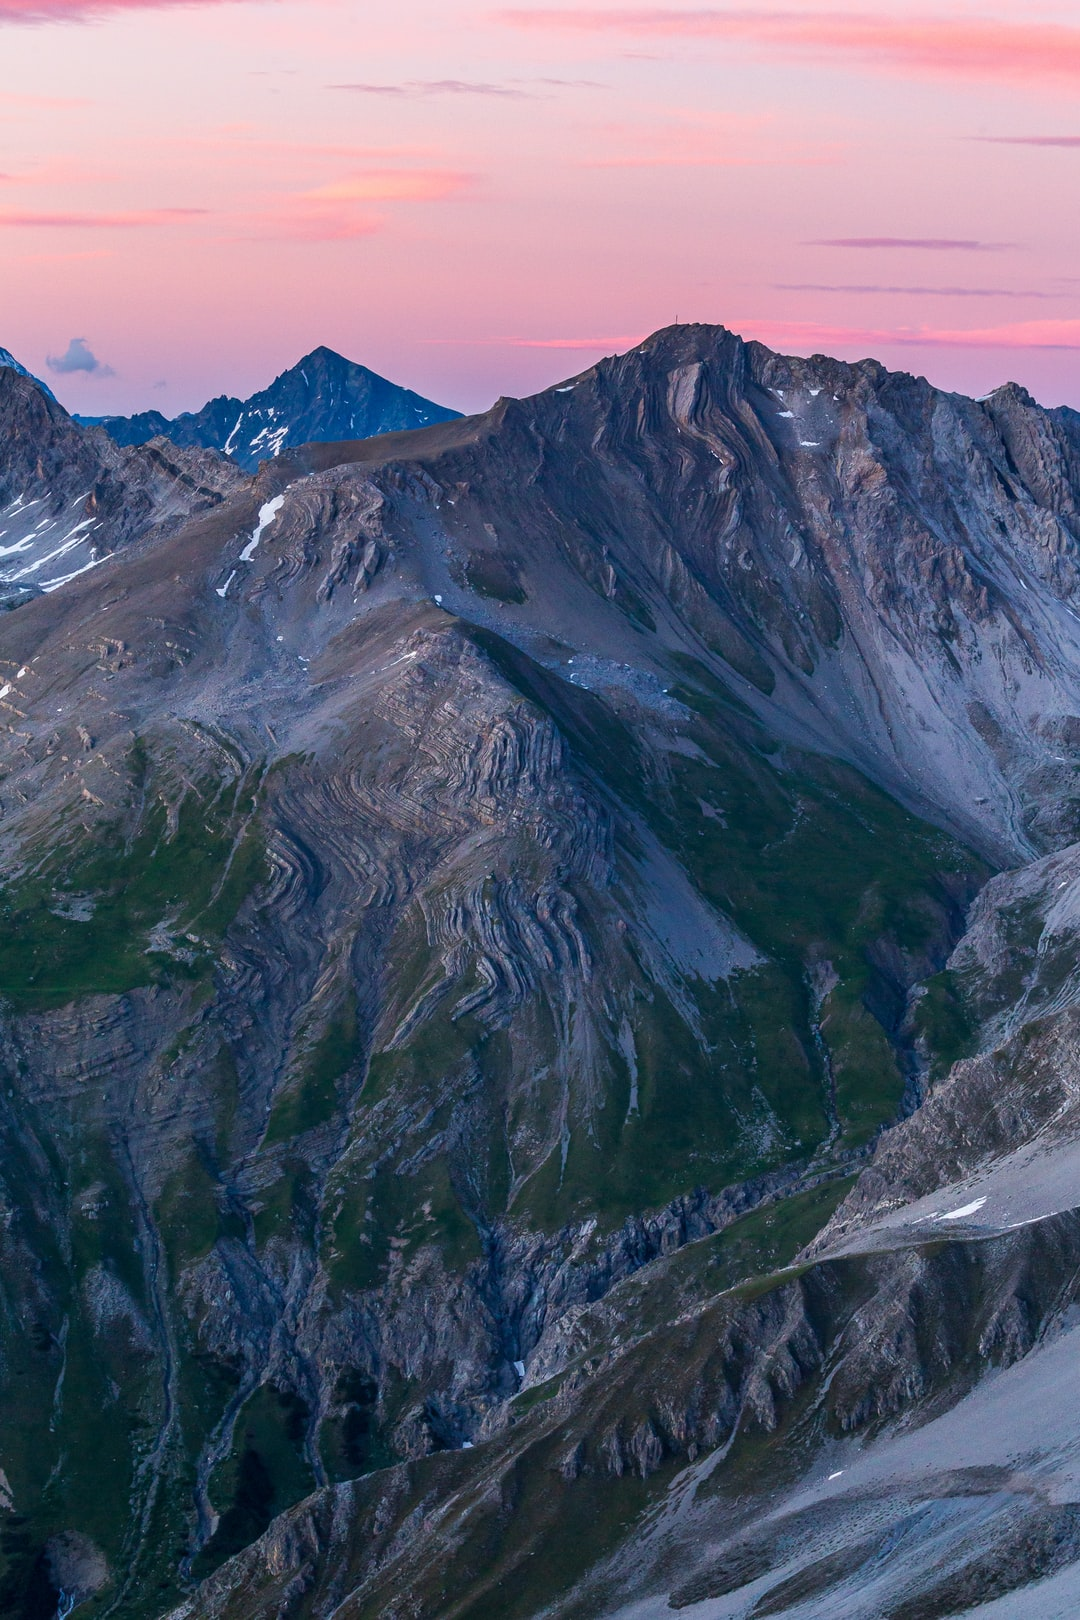 Great display of the immense power of nature. Amazing geology on Chrachenhorn, enlighted by the setting sun and the light spectacle afterwards. Always a fantastic mountain scenery.